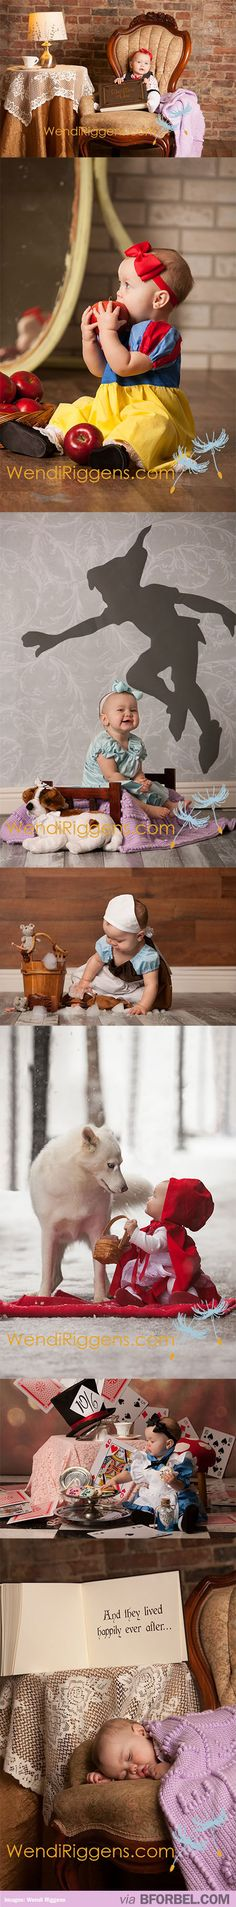 What an adorable photo shoot idea! At first, she's reading the fairytale book then it shows her in each character for each one! Last picture shows her asleep after all of her adventure! So cute!